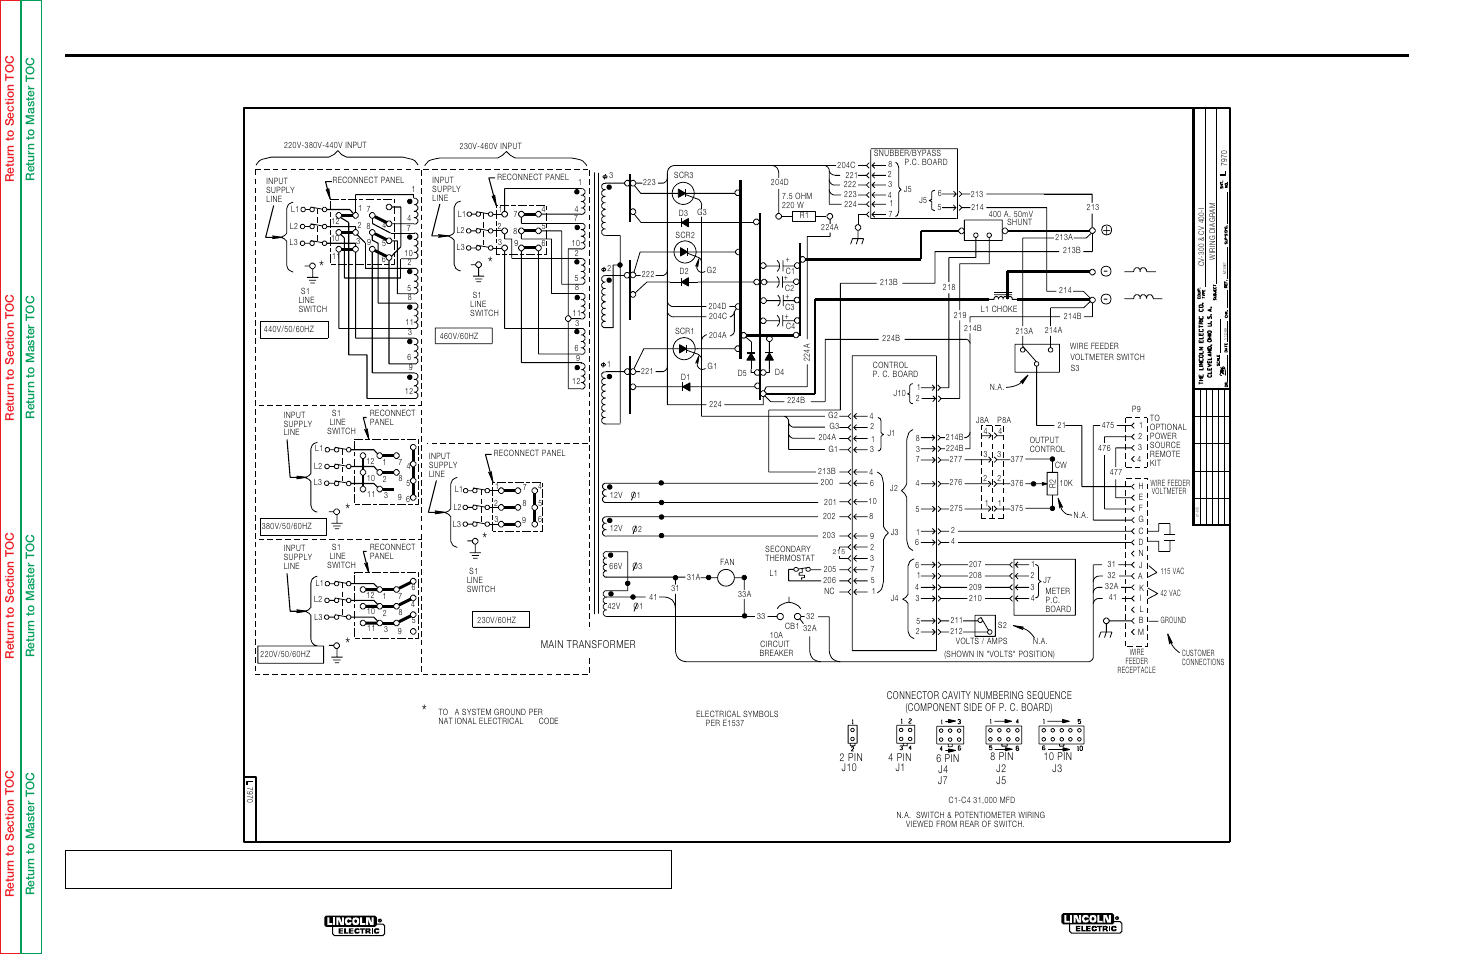 Electrical Diagrams  Wiring Diagram For Code 9456